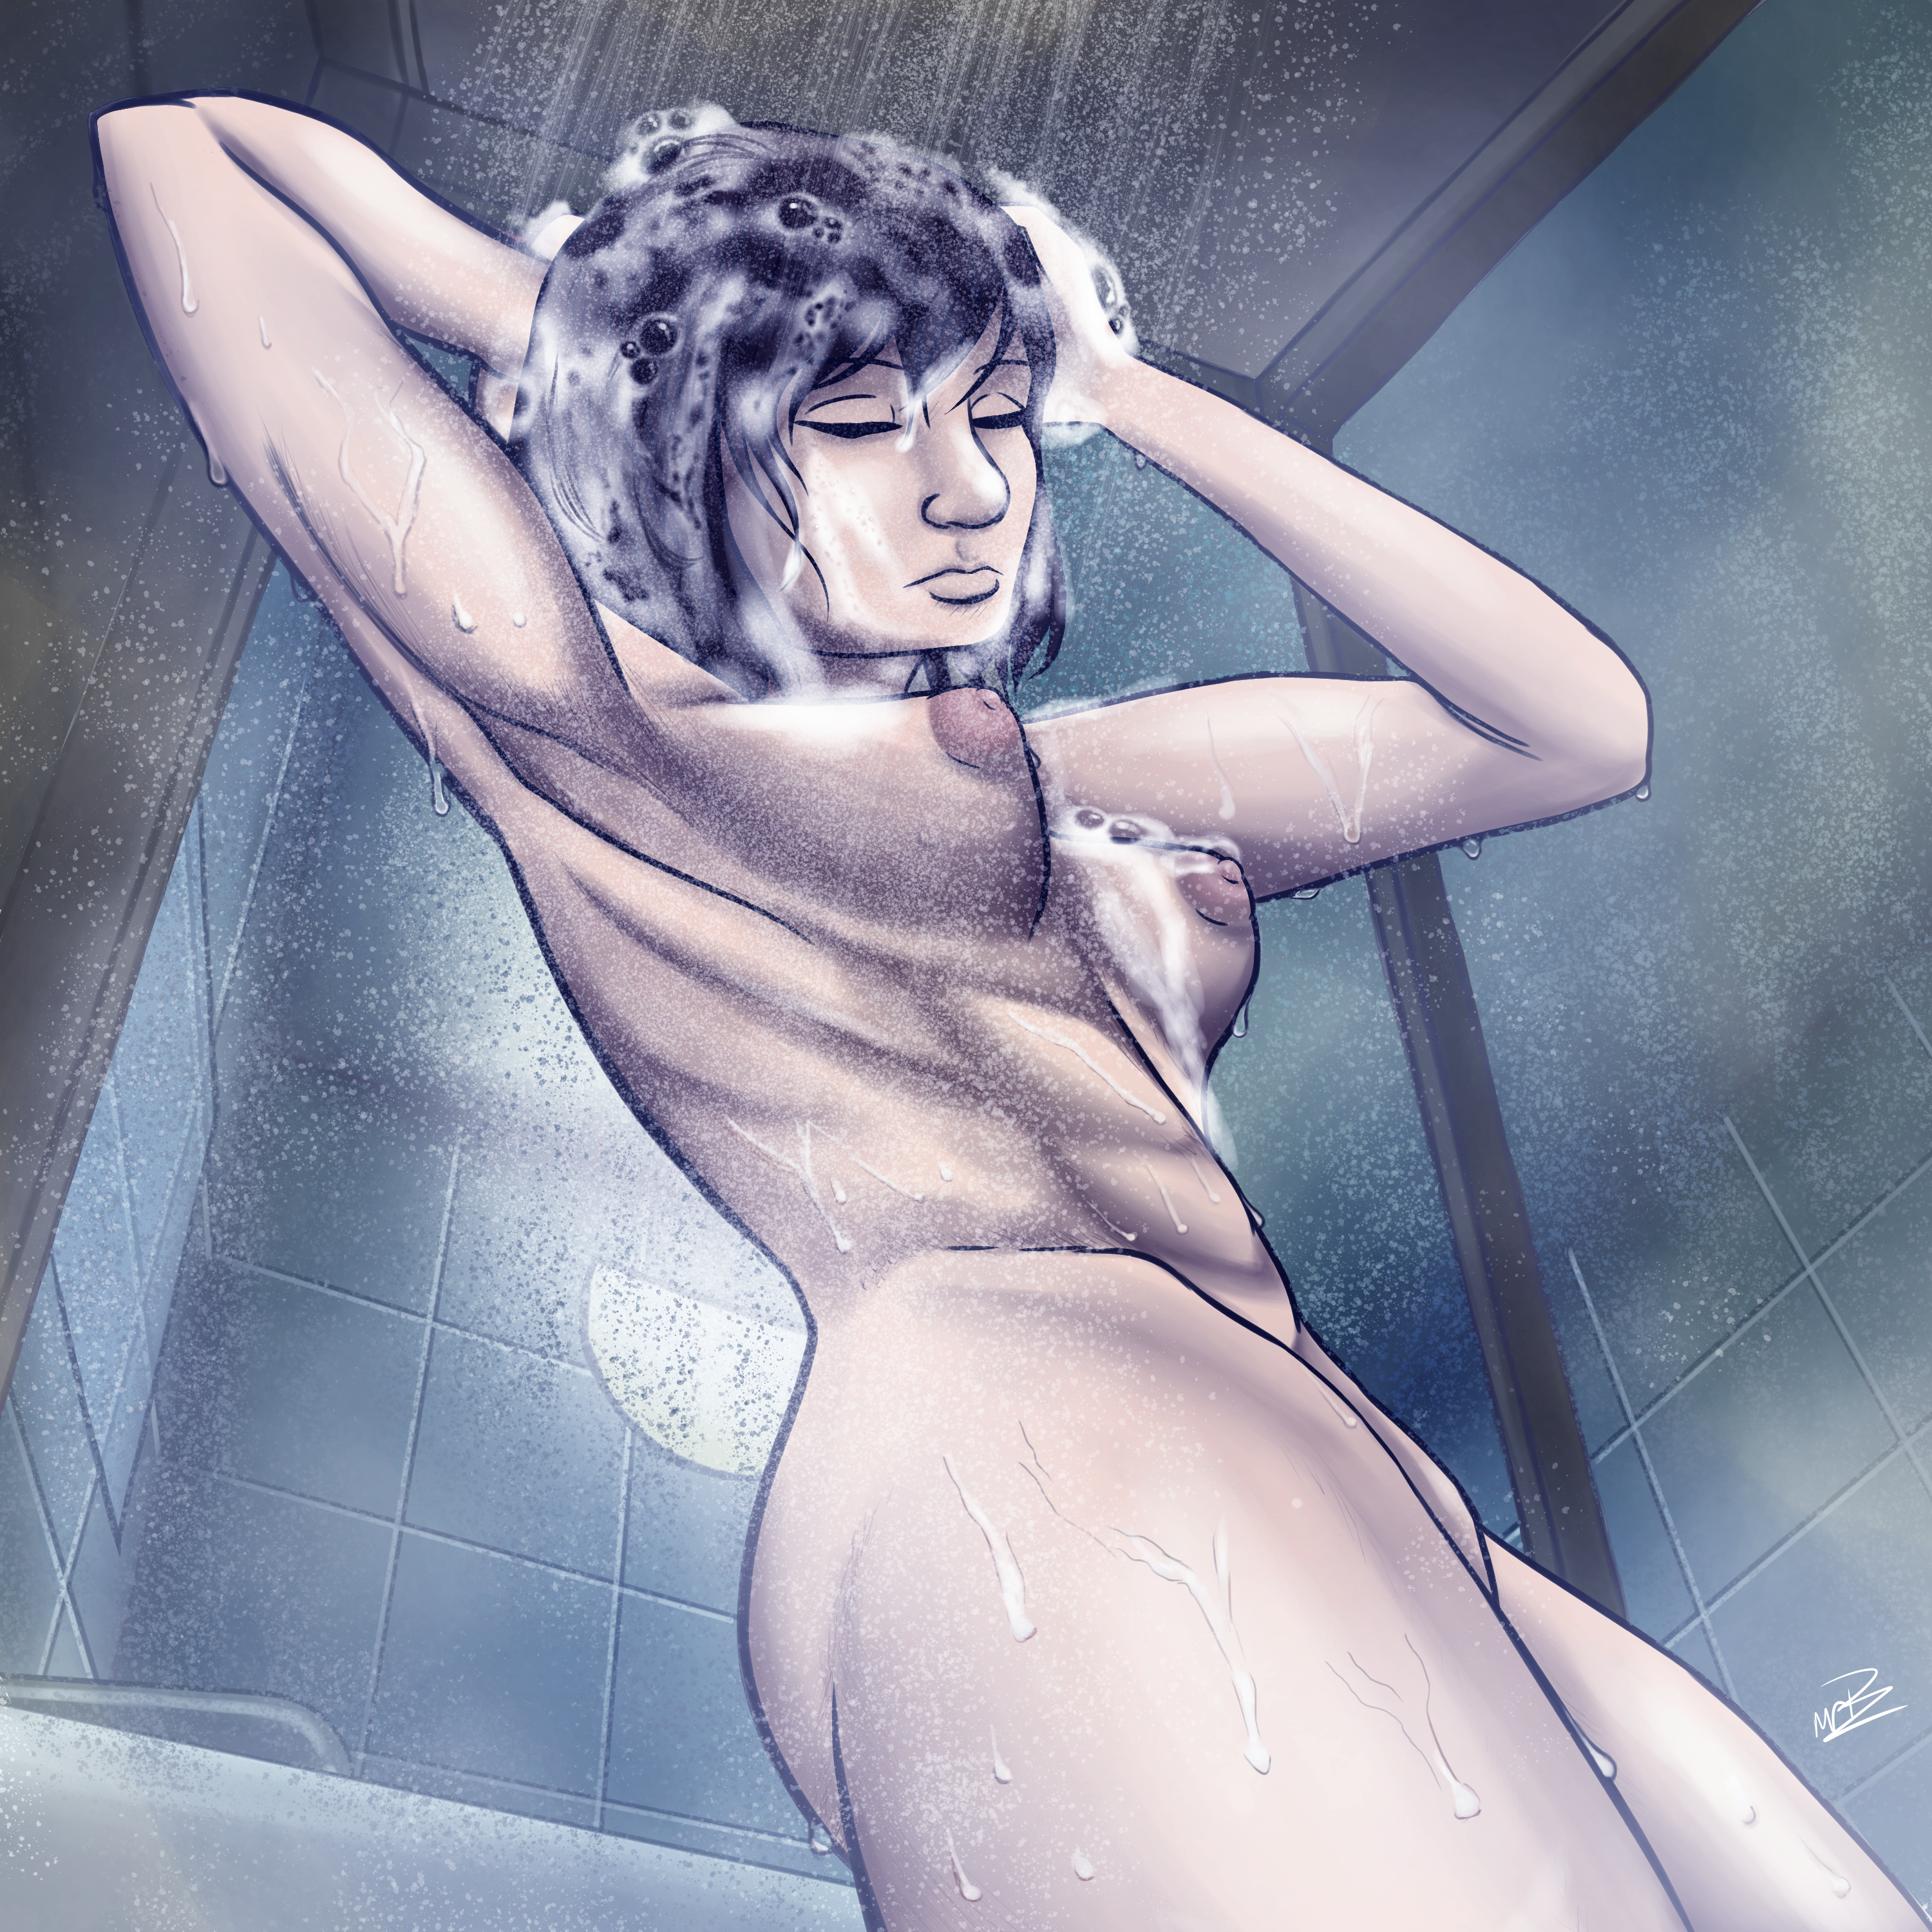 [OC] Emiria taking a shower